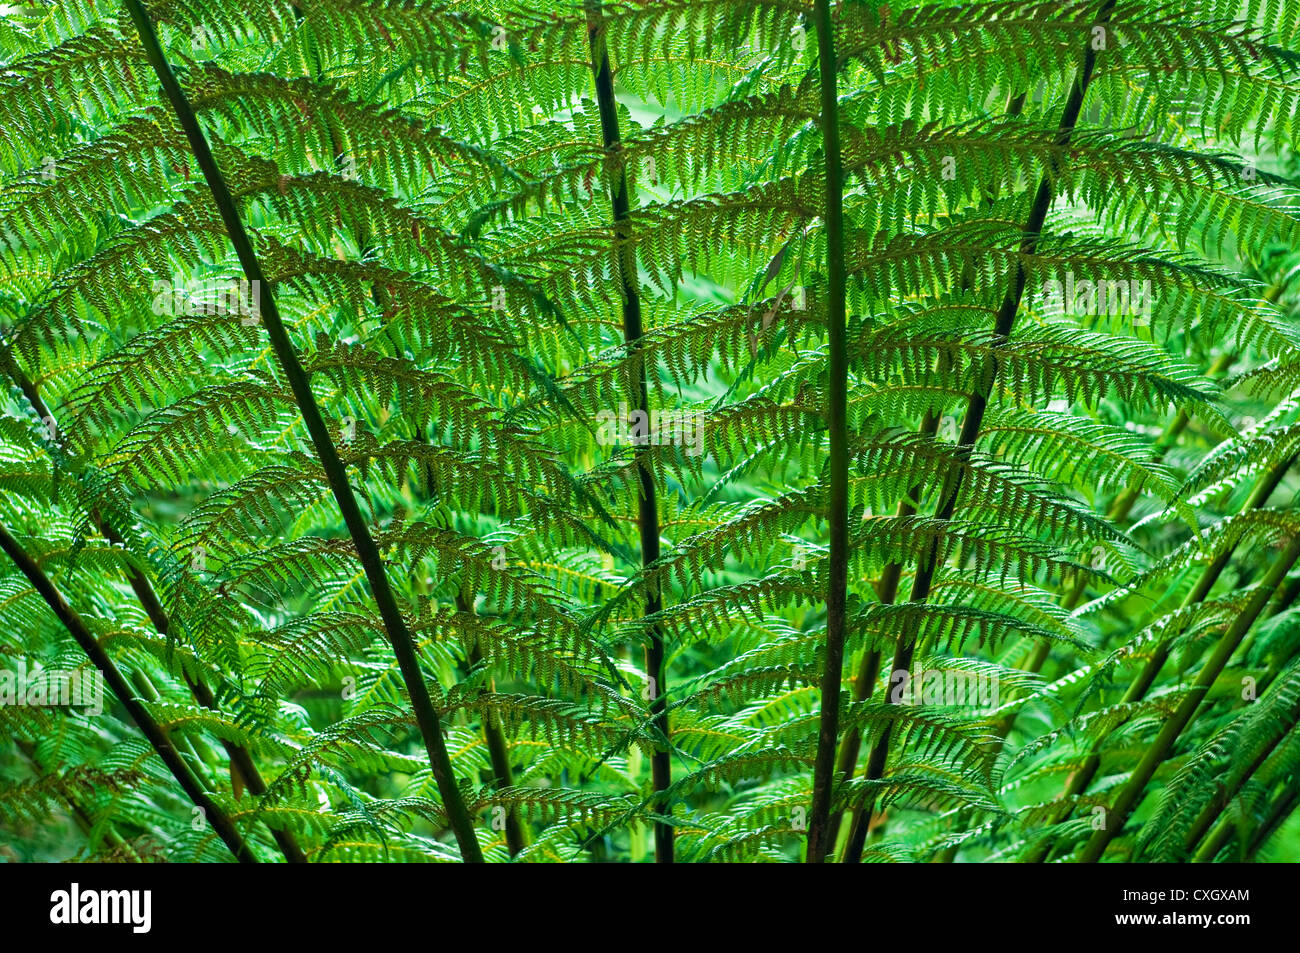 Lush green leafs of a giant fern. - Stock Image